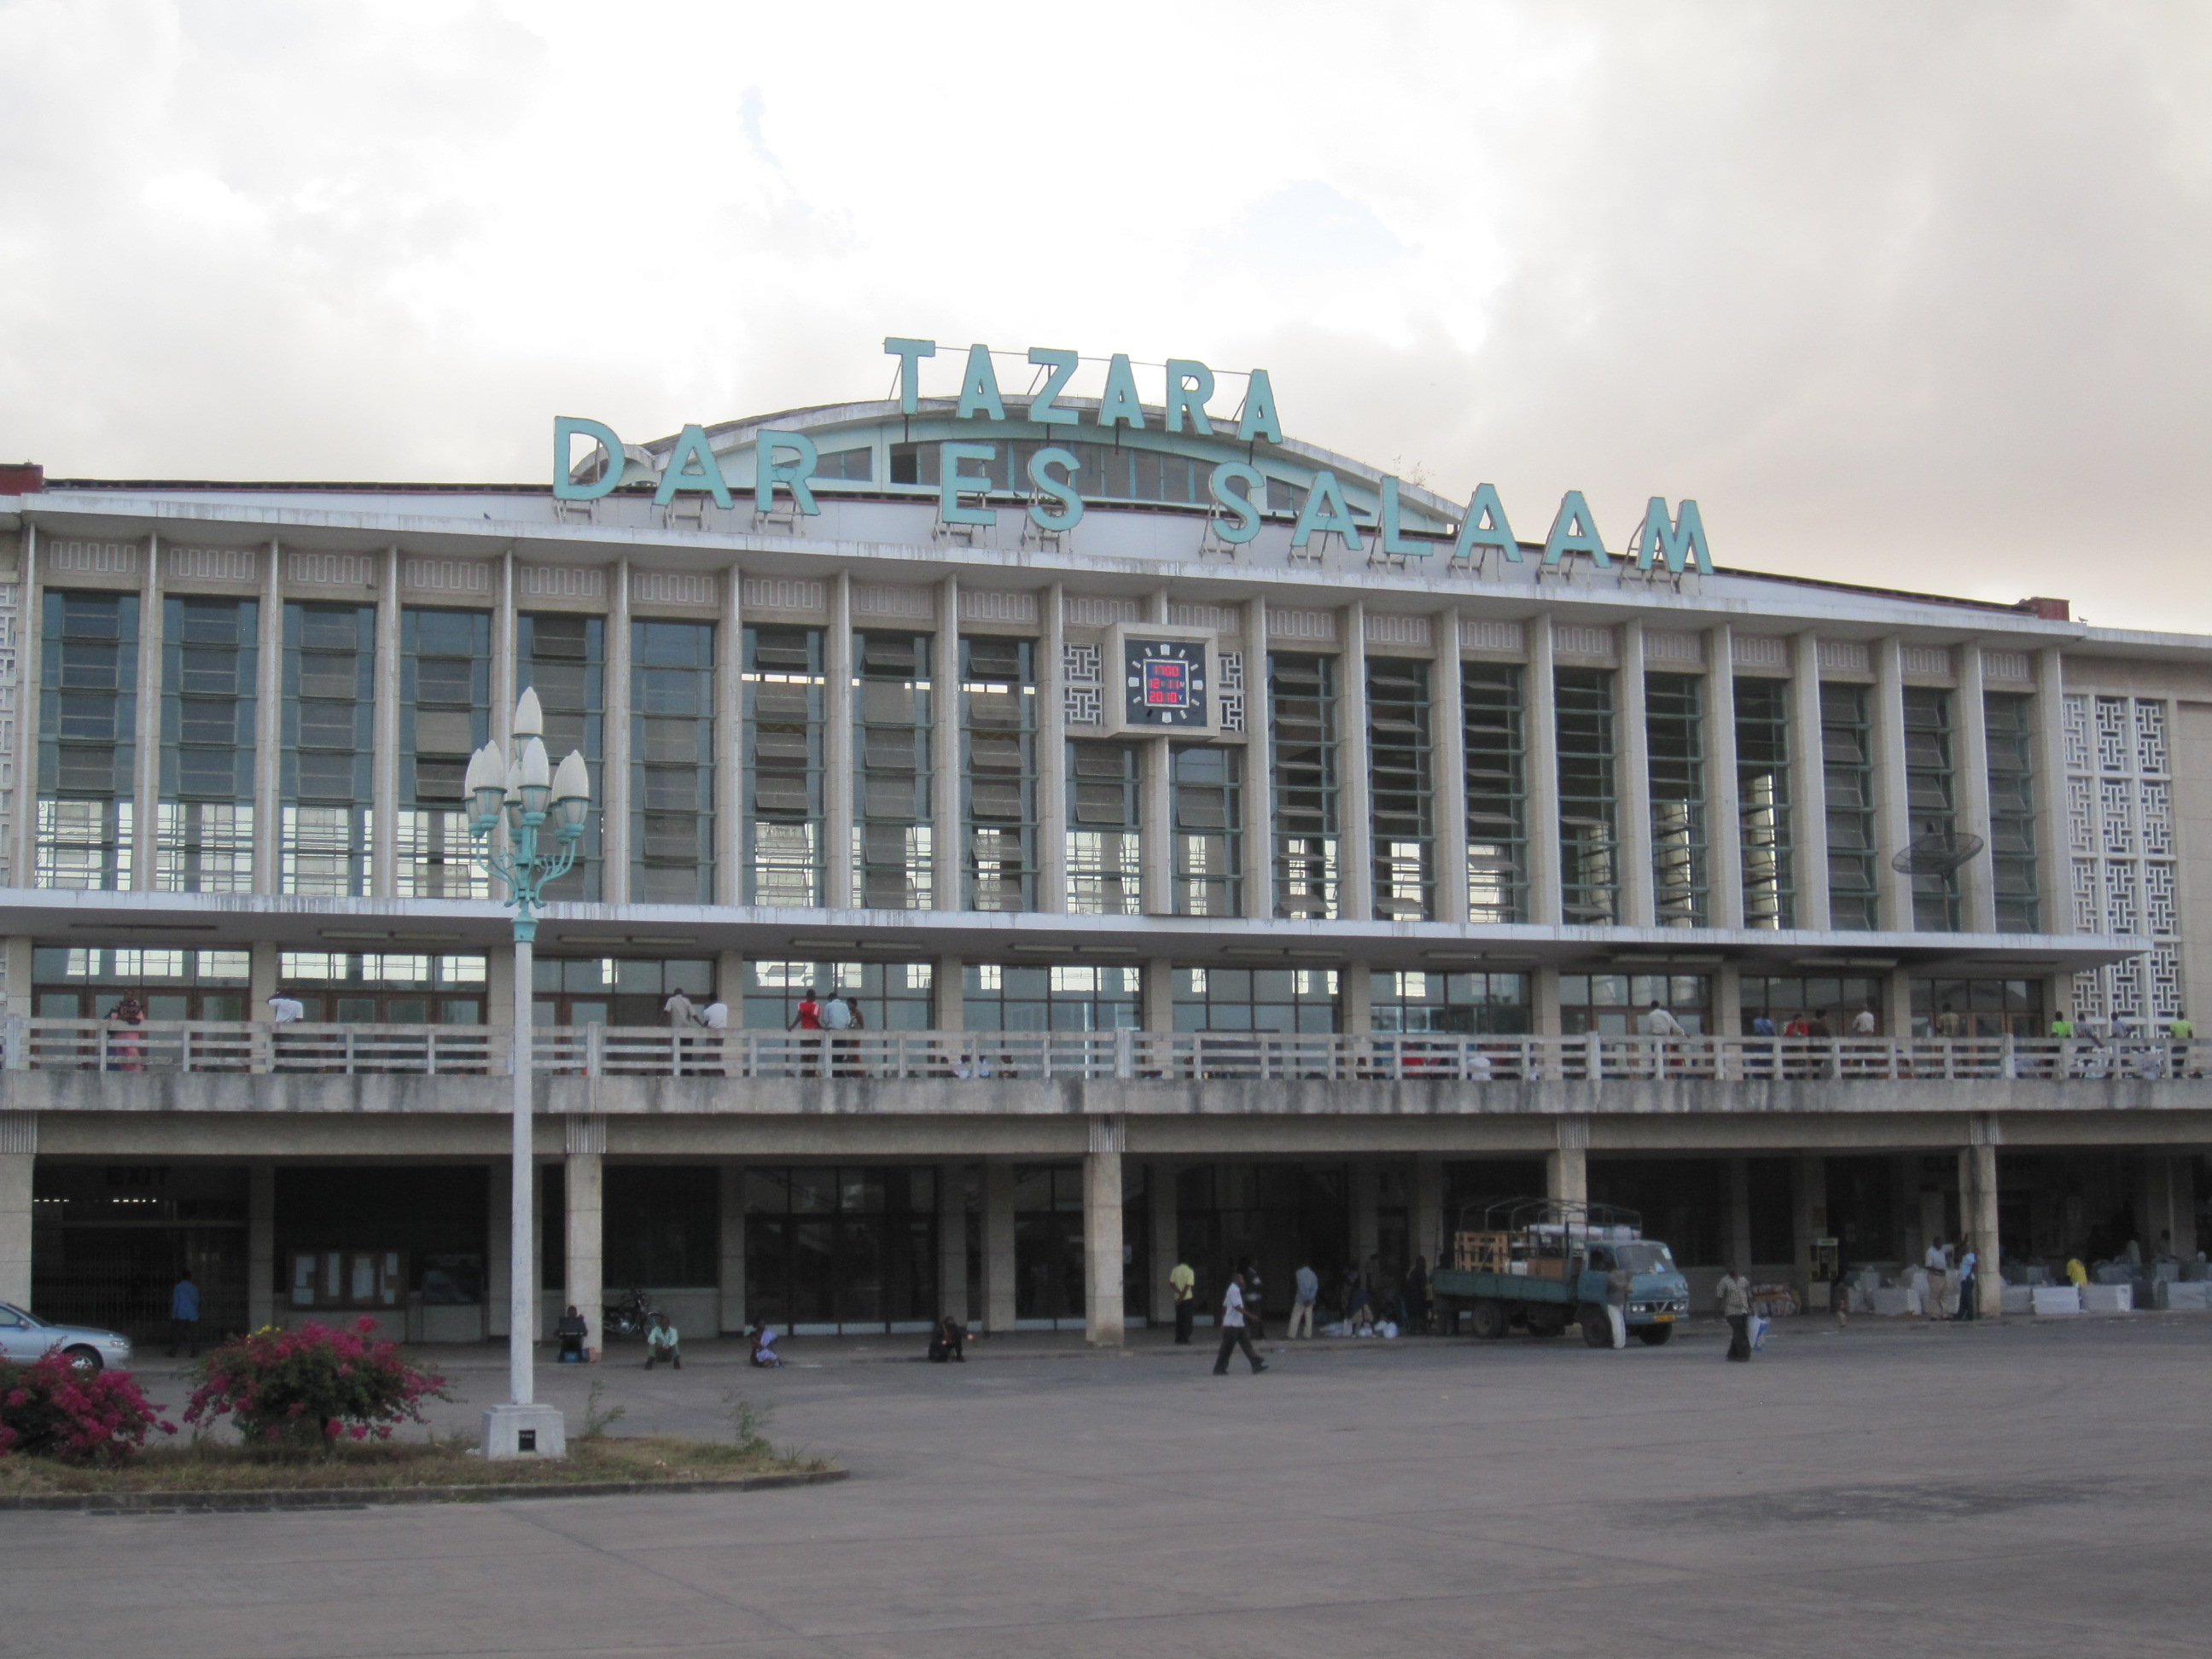 Dar station in all its art deco glory